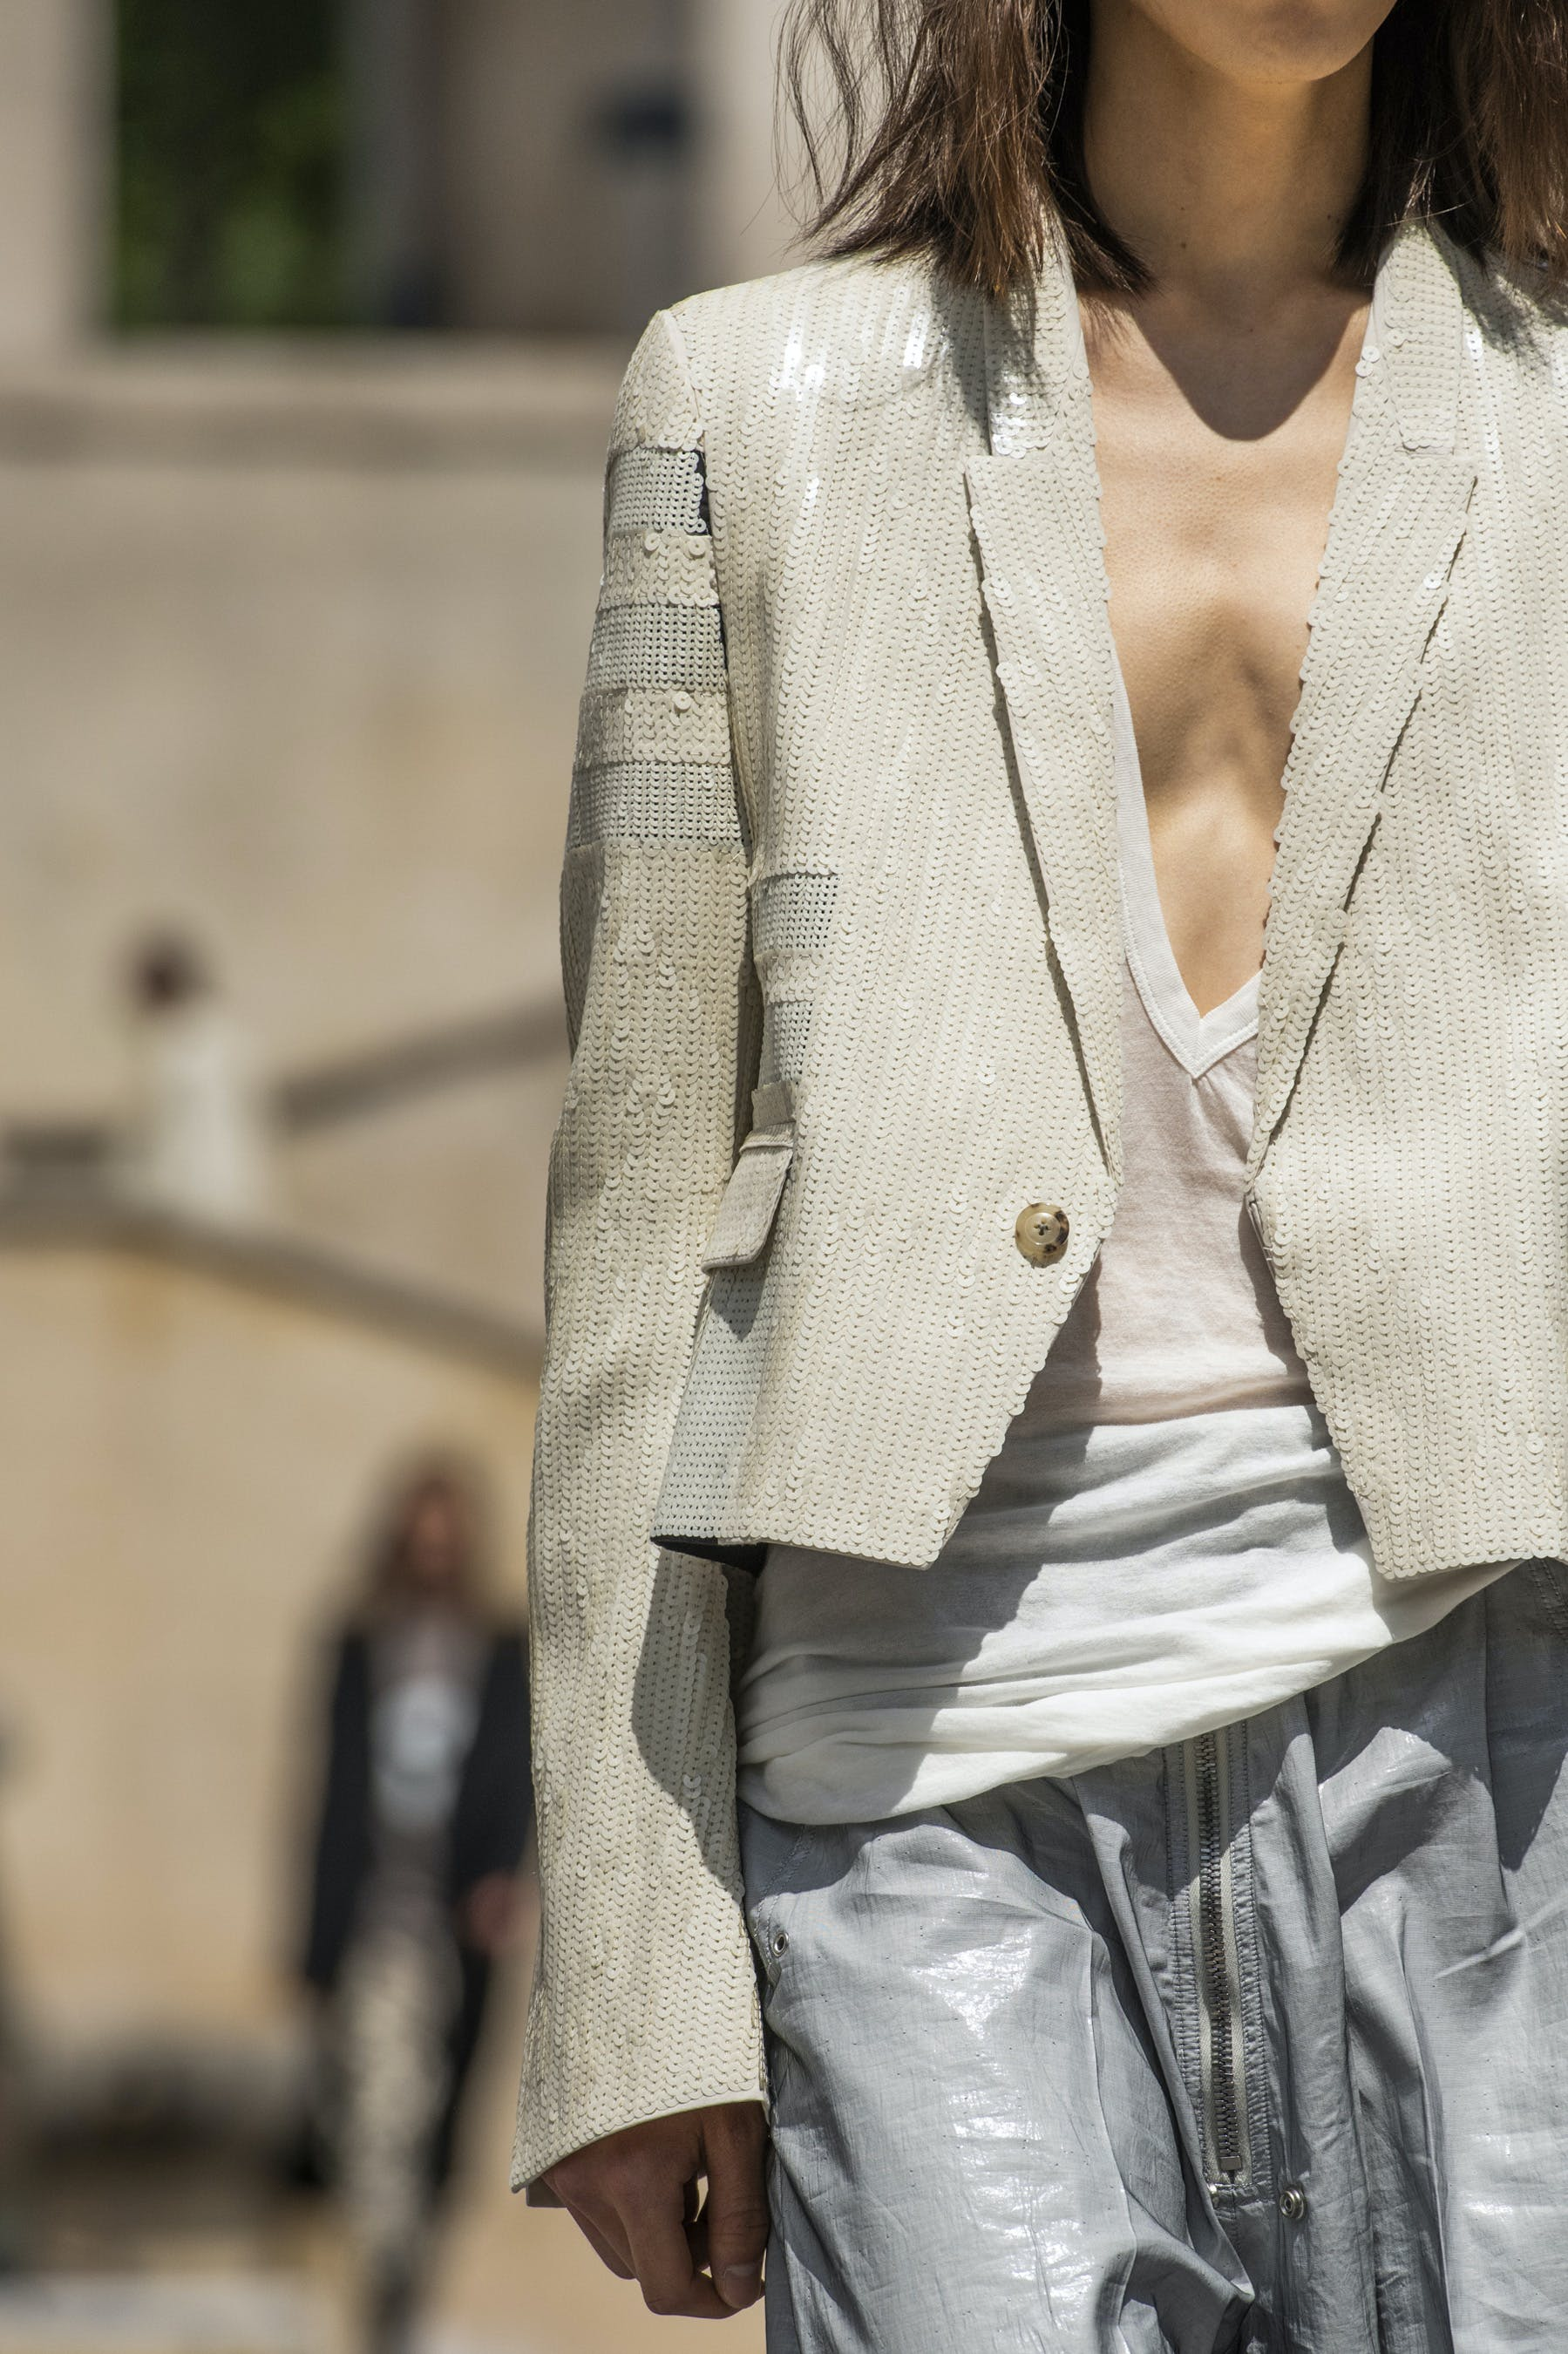 Rick Owens Runway Details Sequinned Cropped Blazer in White Dust Grey Champion Collaboration V Neck T Shirt Ies Bodybag In Grey Leather Mens SS20 Tecautl